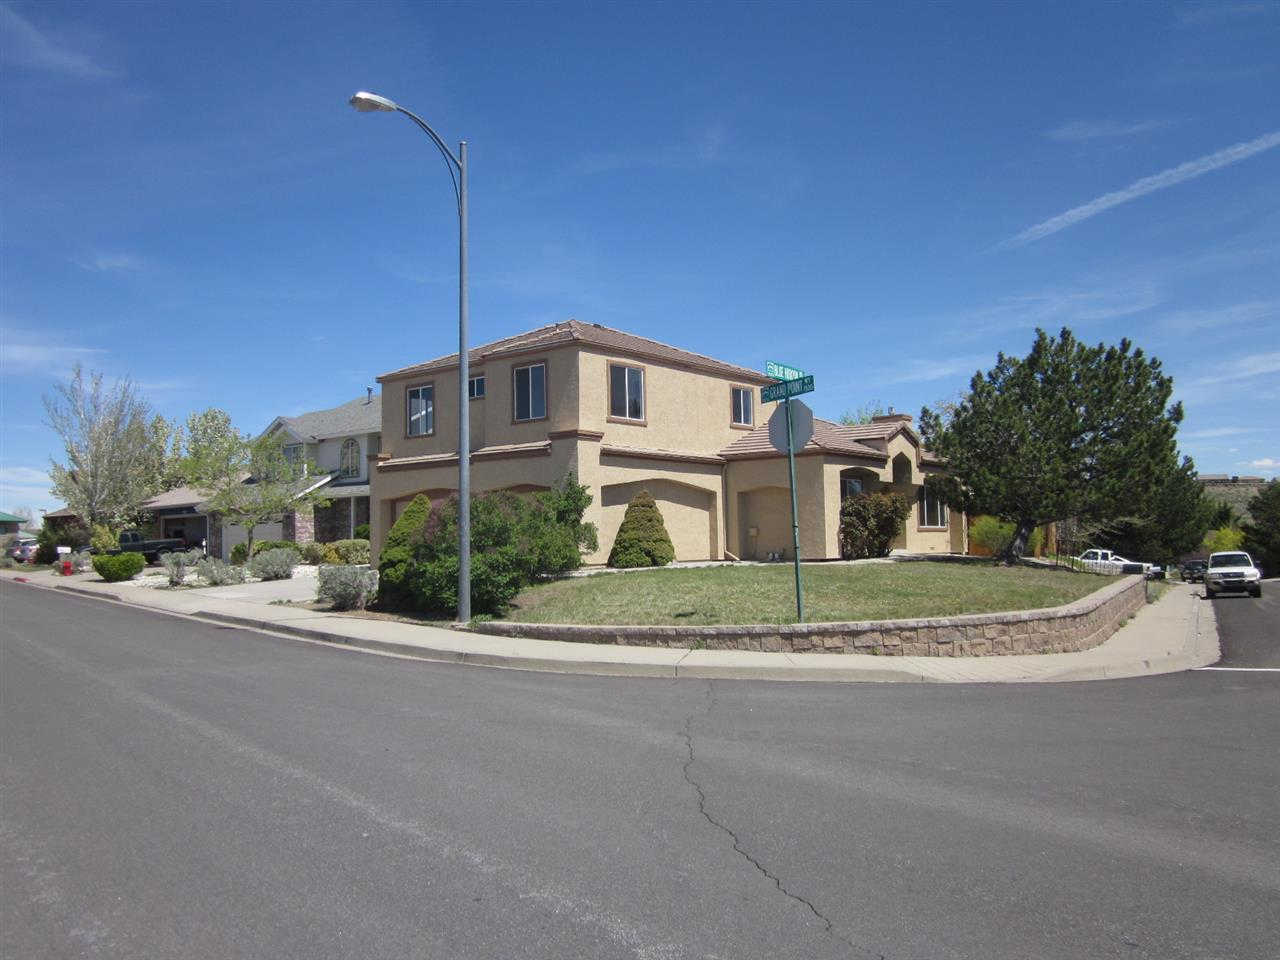 5895 Blue Horizon Drive, Reno, NV 89523 now has a new price of $419,900!